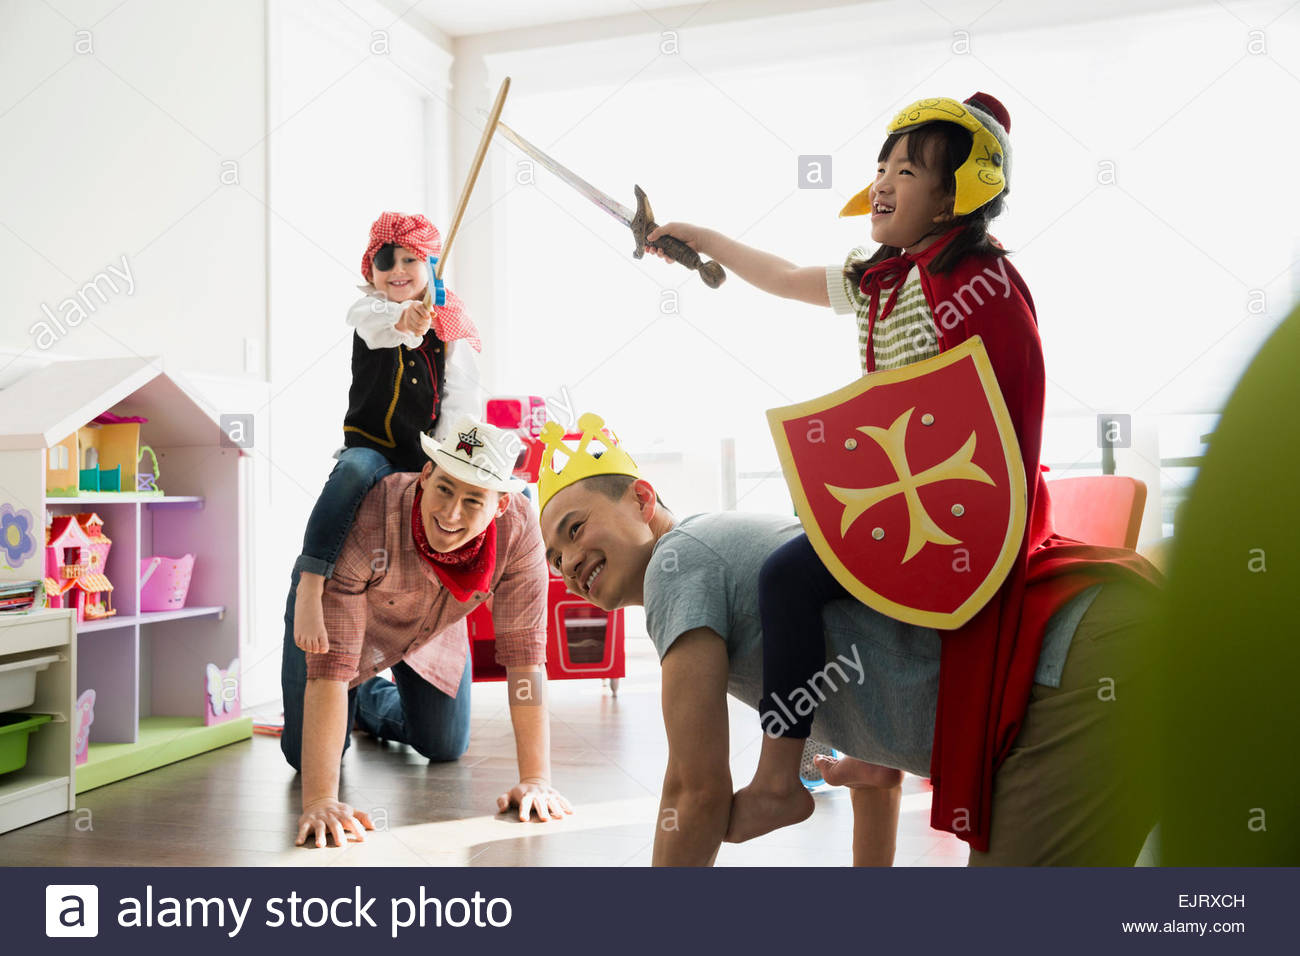 Fathers piggybacking daughters in costumes playing sword fight - Stock Image